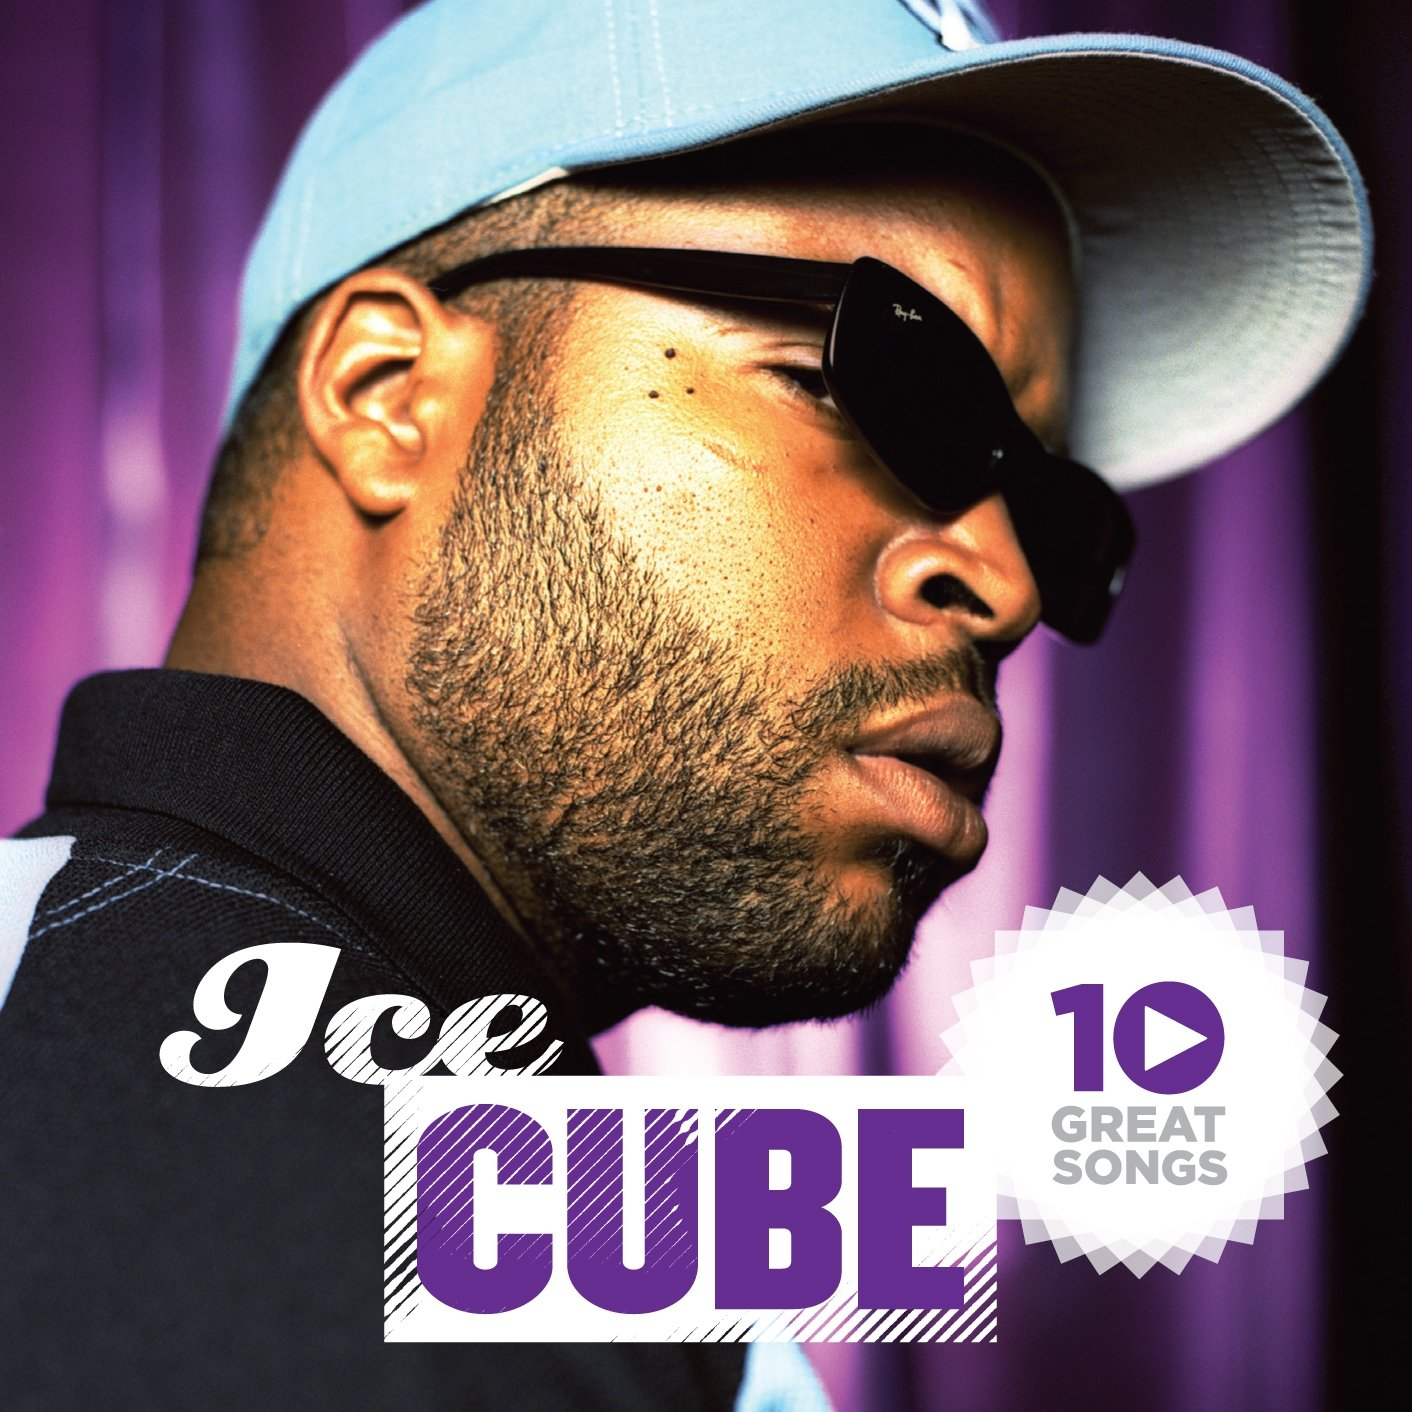 Ice cube 10 great songs amazon music 1betcityfo Images